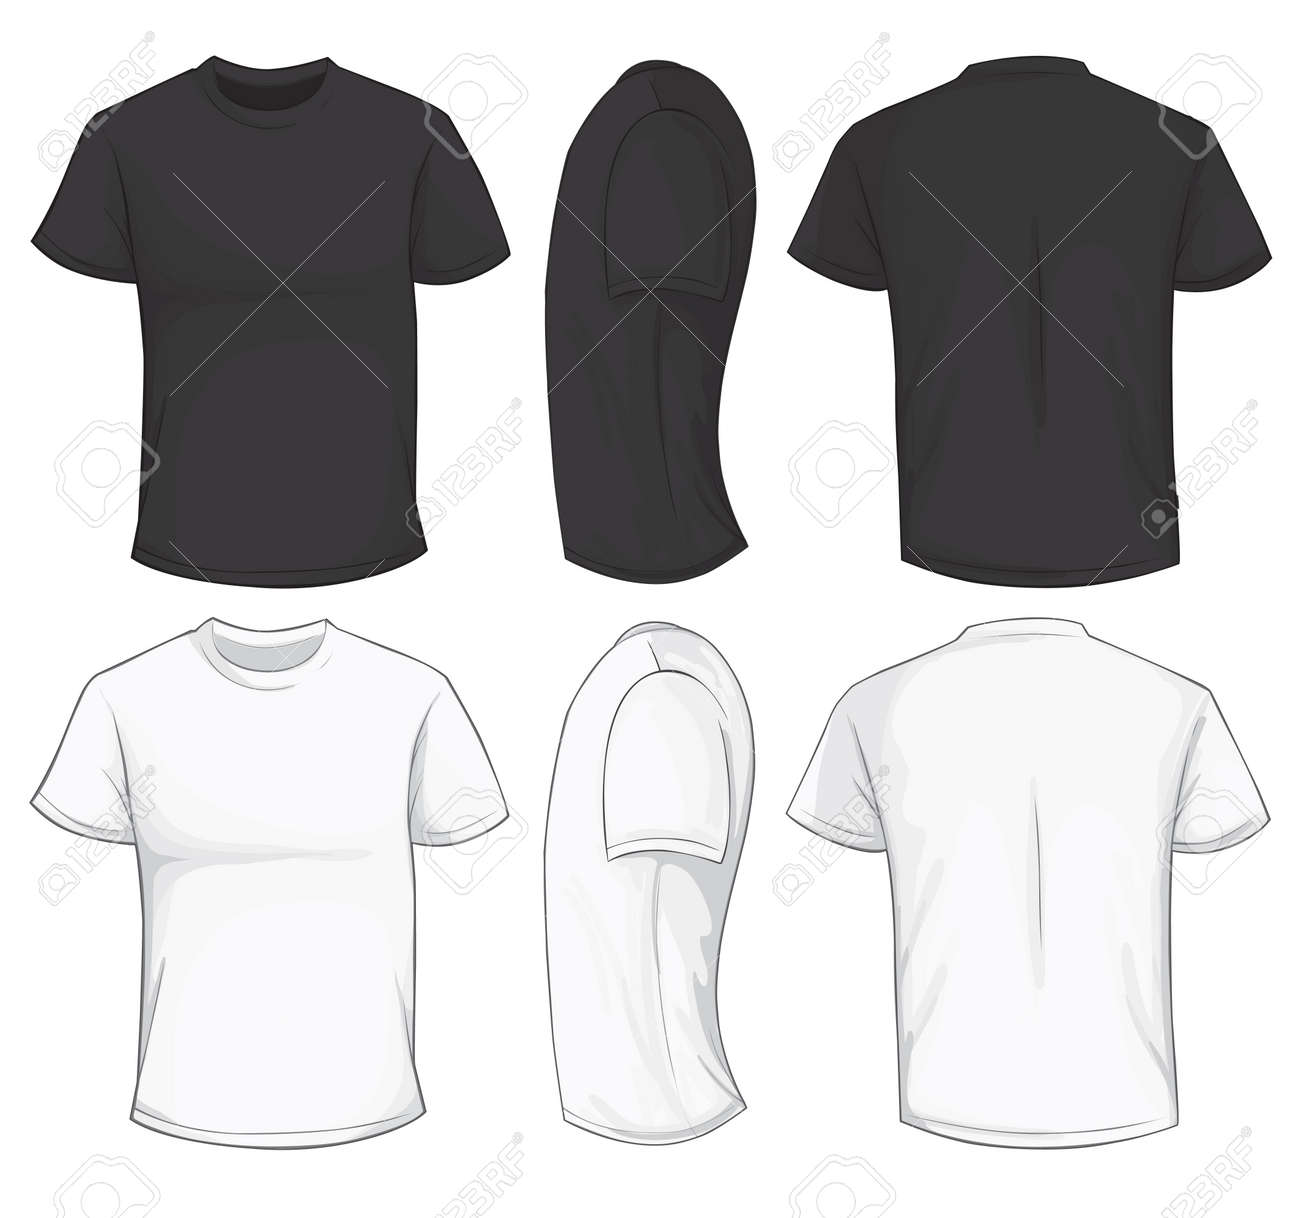 Buy side t shirt template - 58% OFF! Share discount